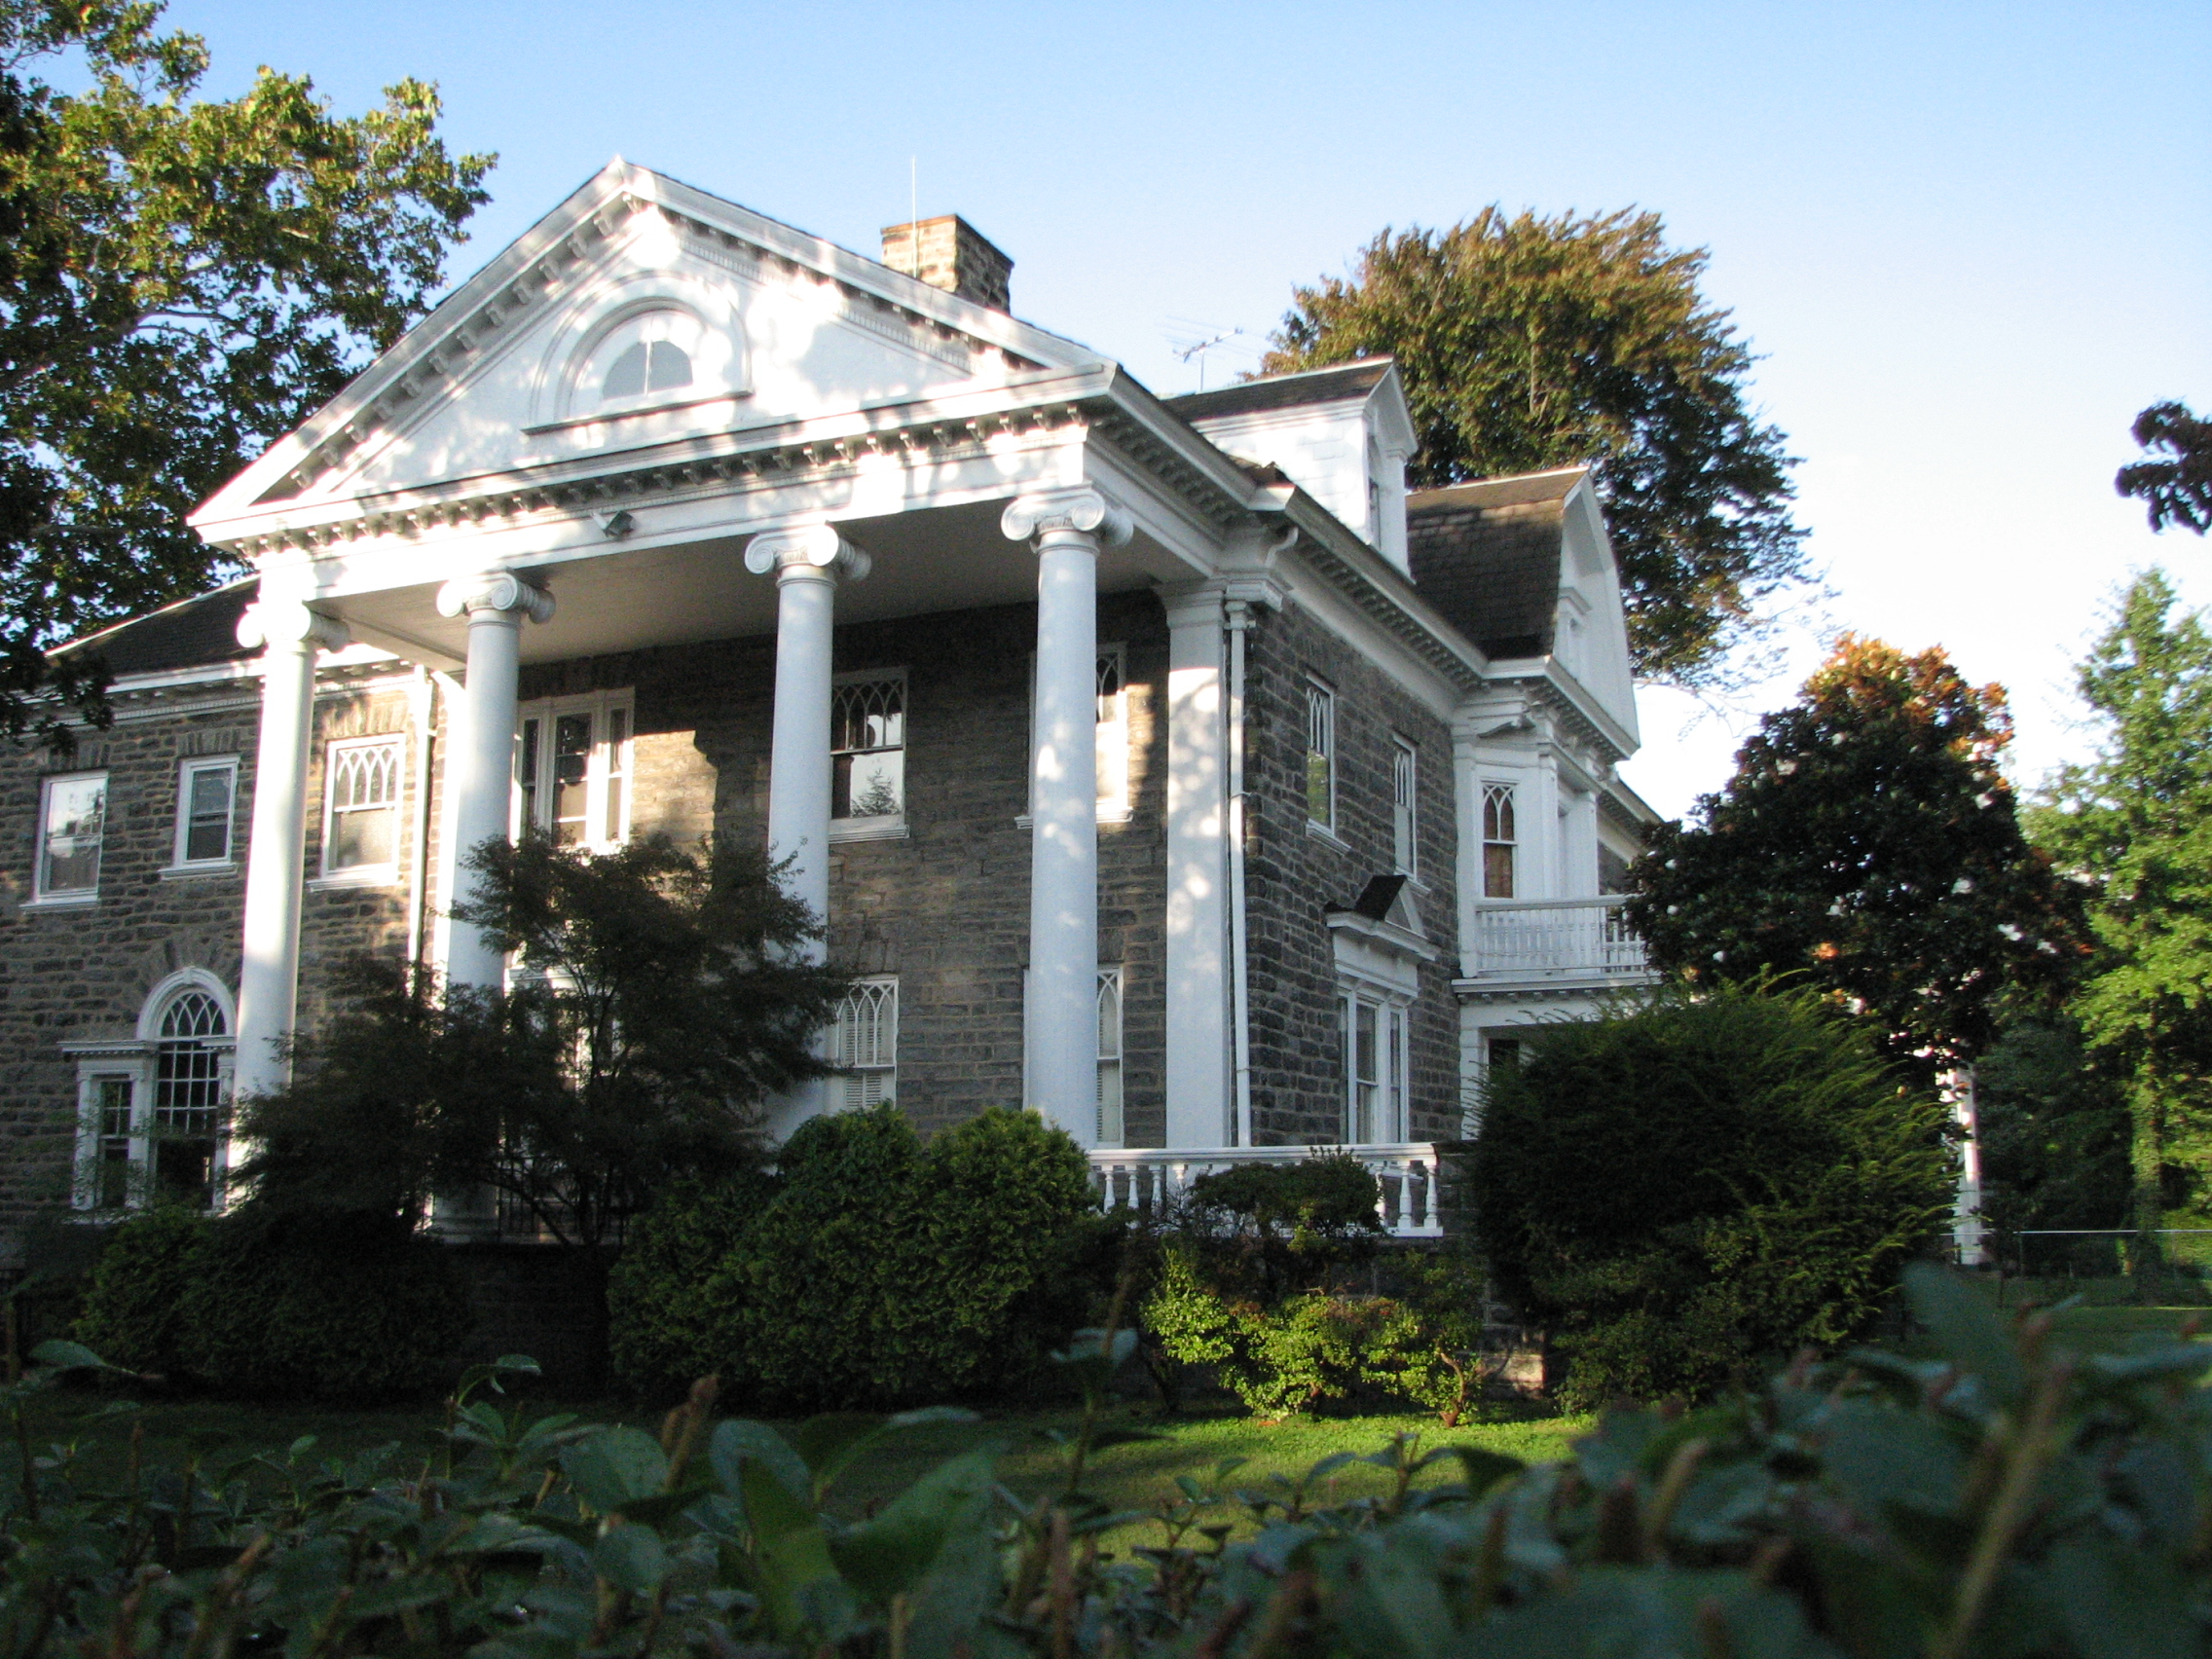 Thomas Lonsdale designed this Colonial-style house with Classical features on the 5800 block of Drexel Road.